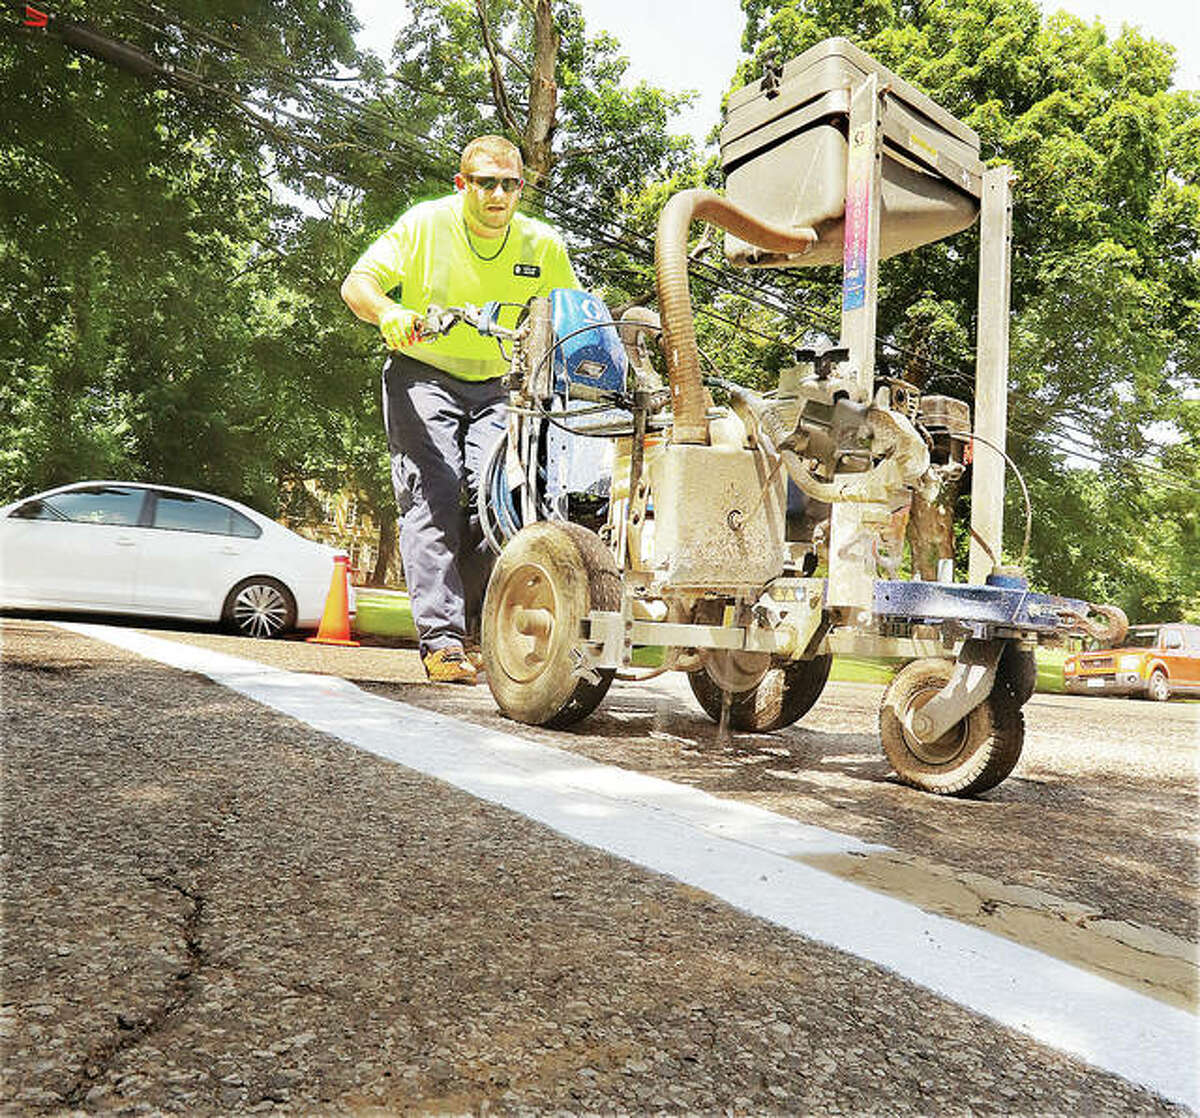 Alton Public Works employee Cory Van Doren paints the white stripes across State Street in Alton this week near West Elementary School. The annual chore, done most years just before school is ready to start, makes the crosswalks more visible.